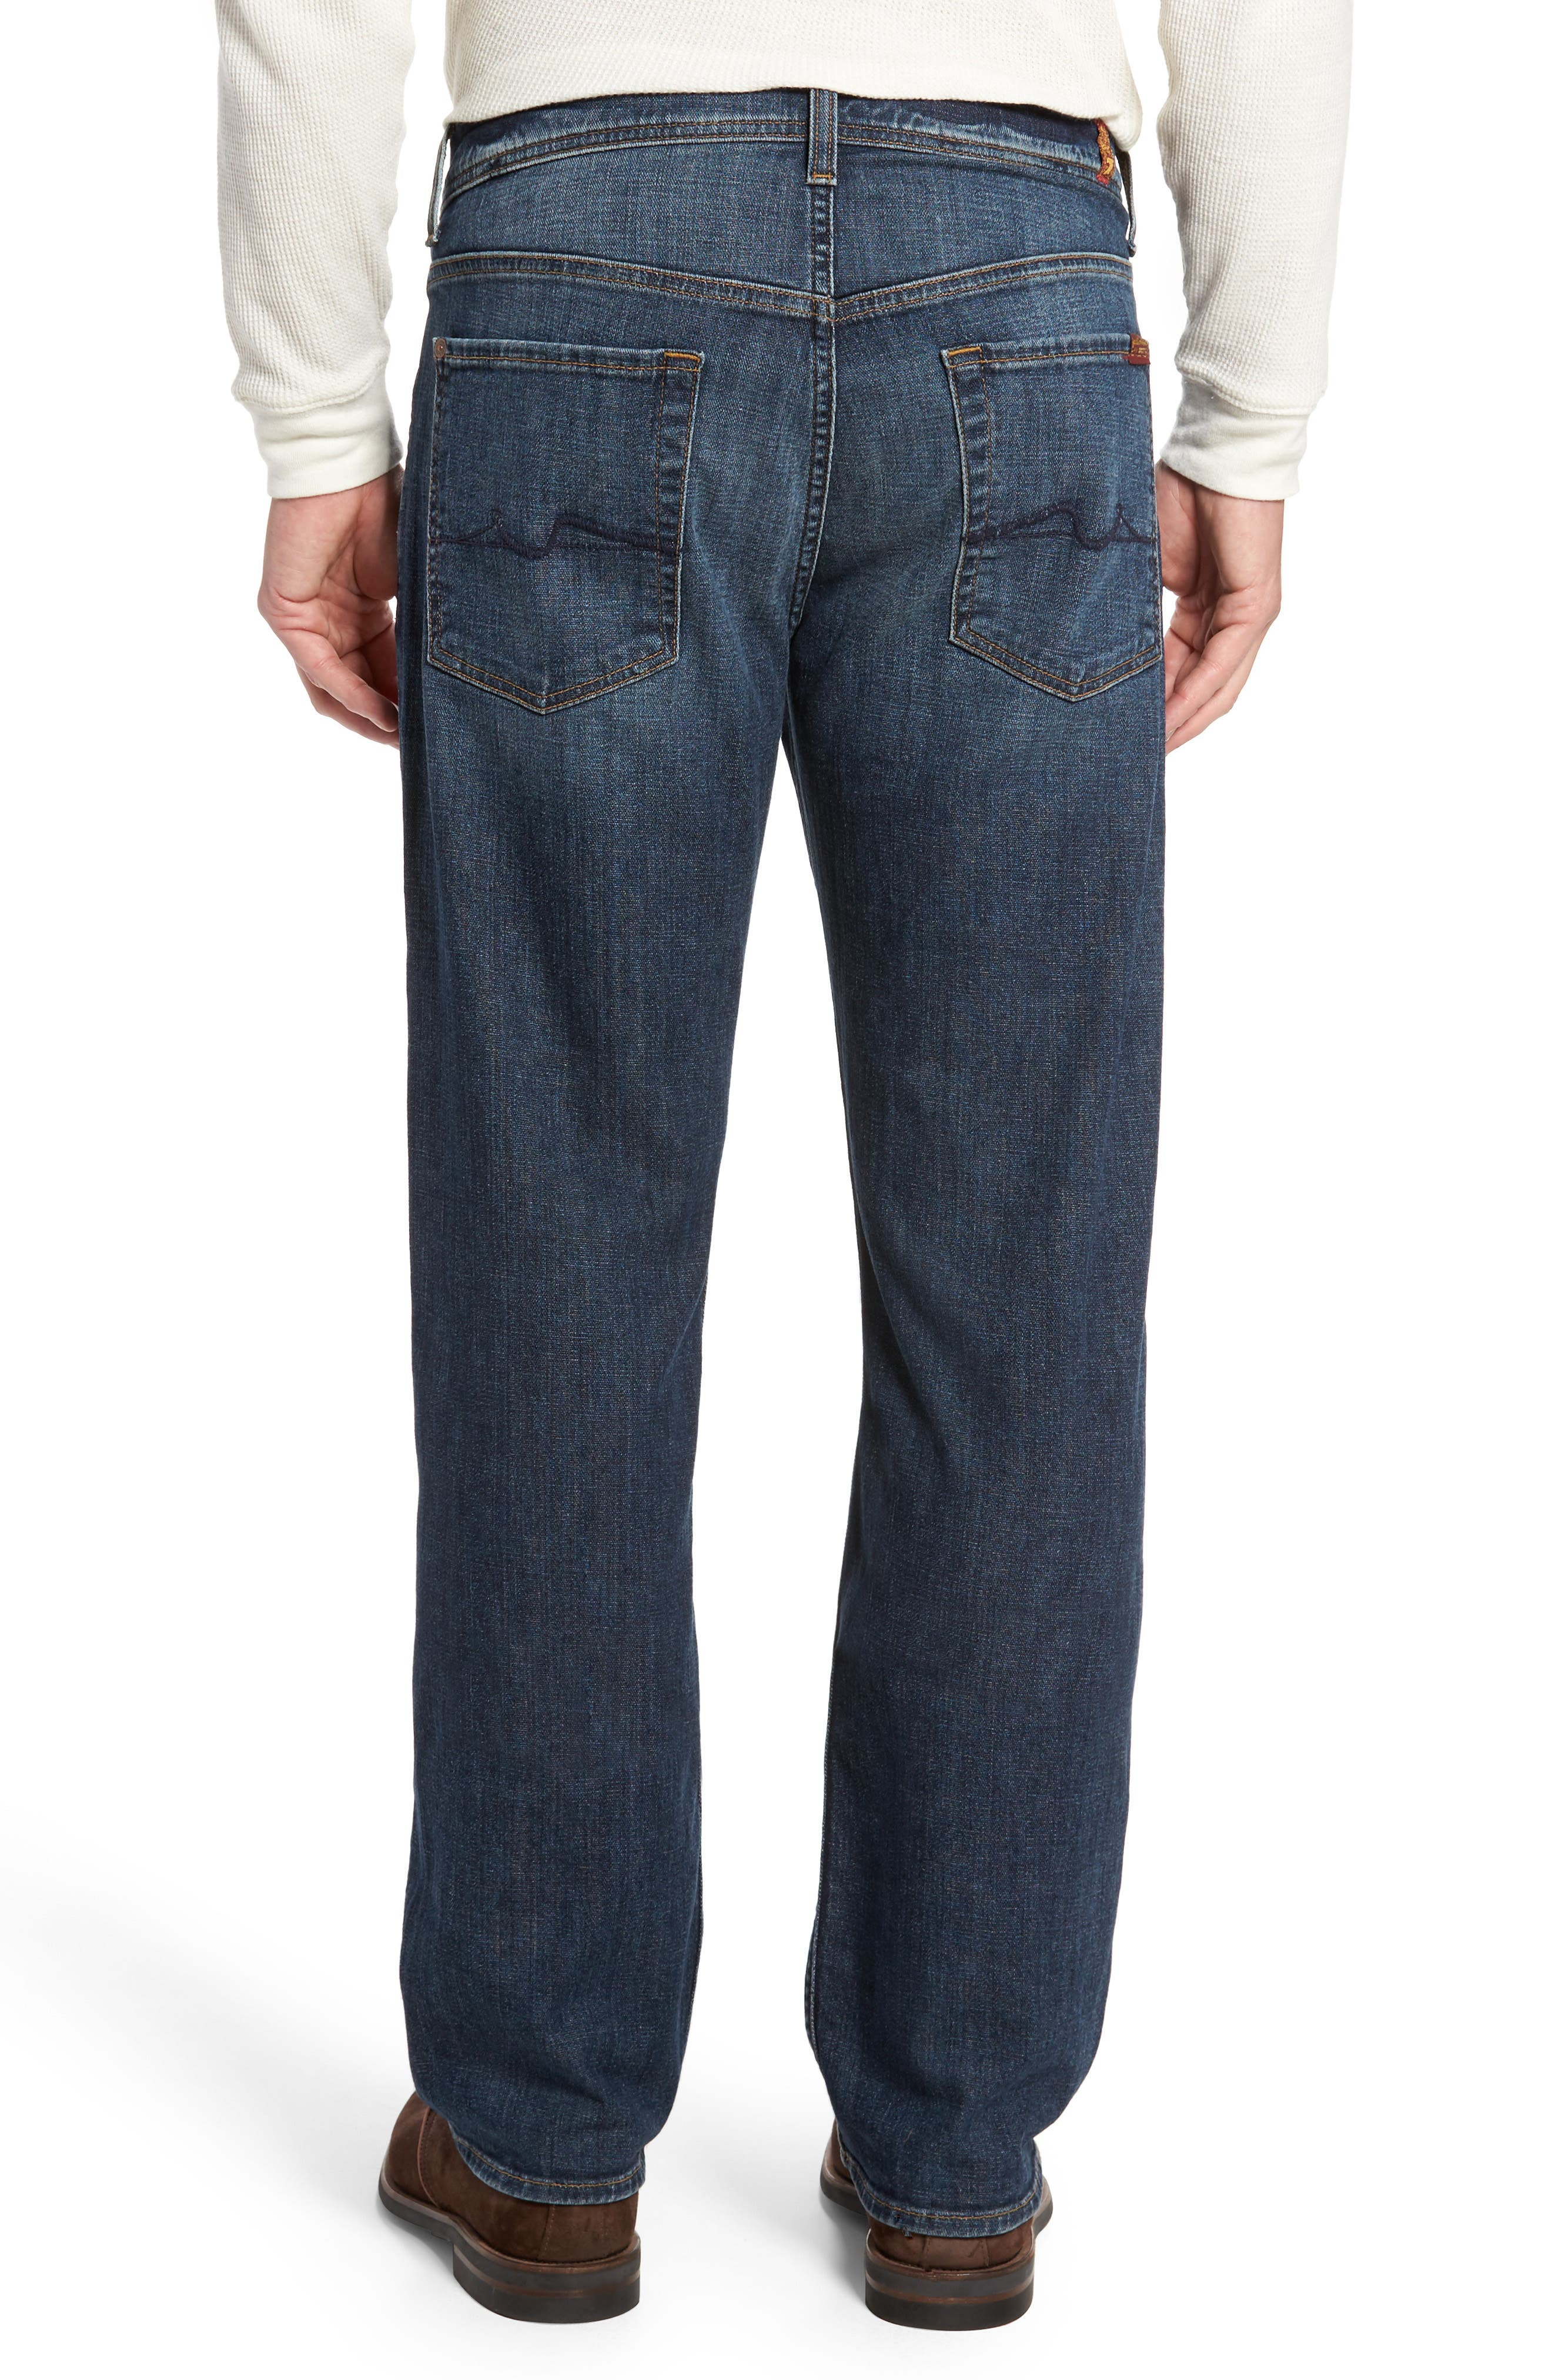 Austyn Relaxed Fit Jeans,                             Alternate thumbnail 2, color,                             400